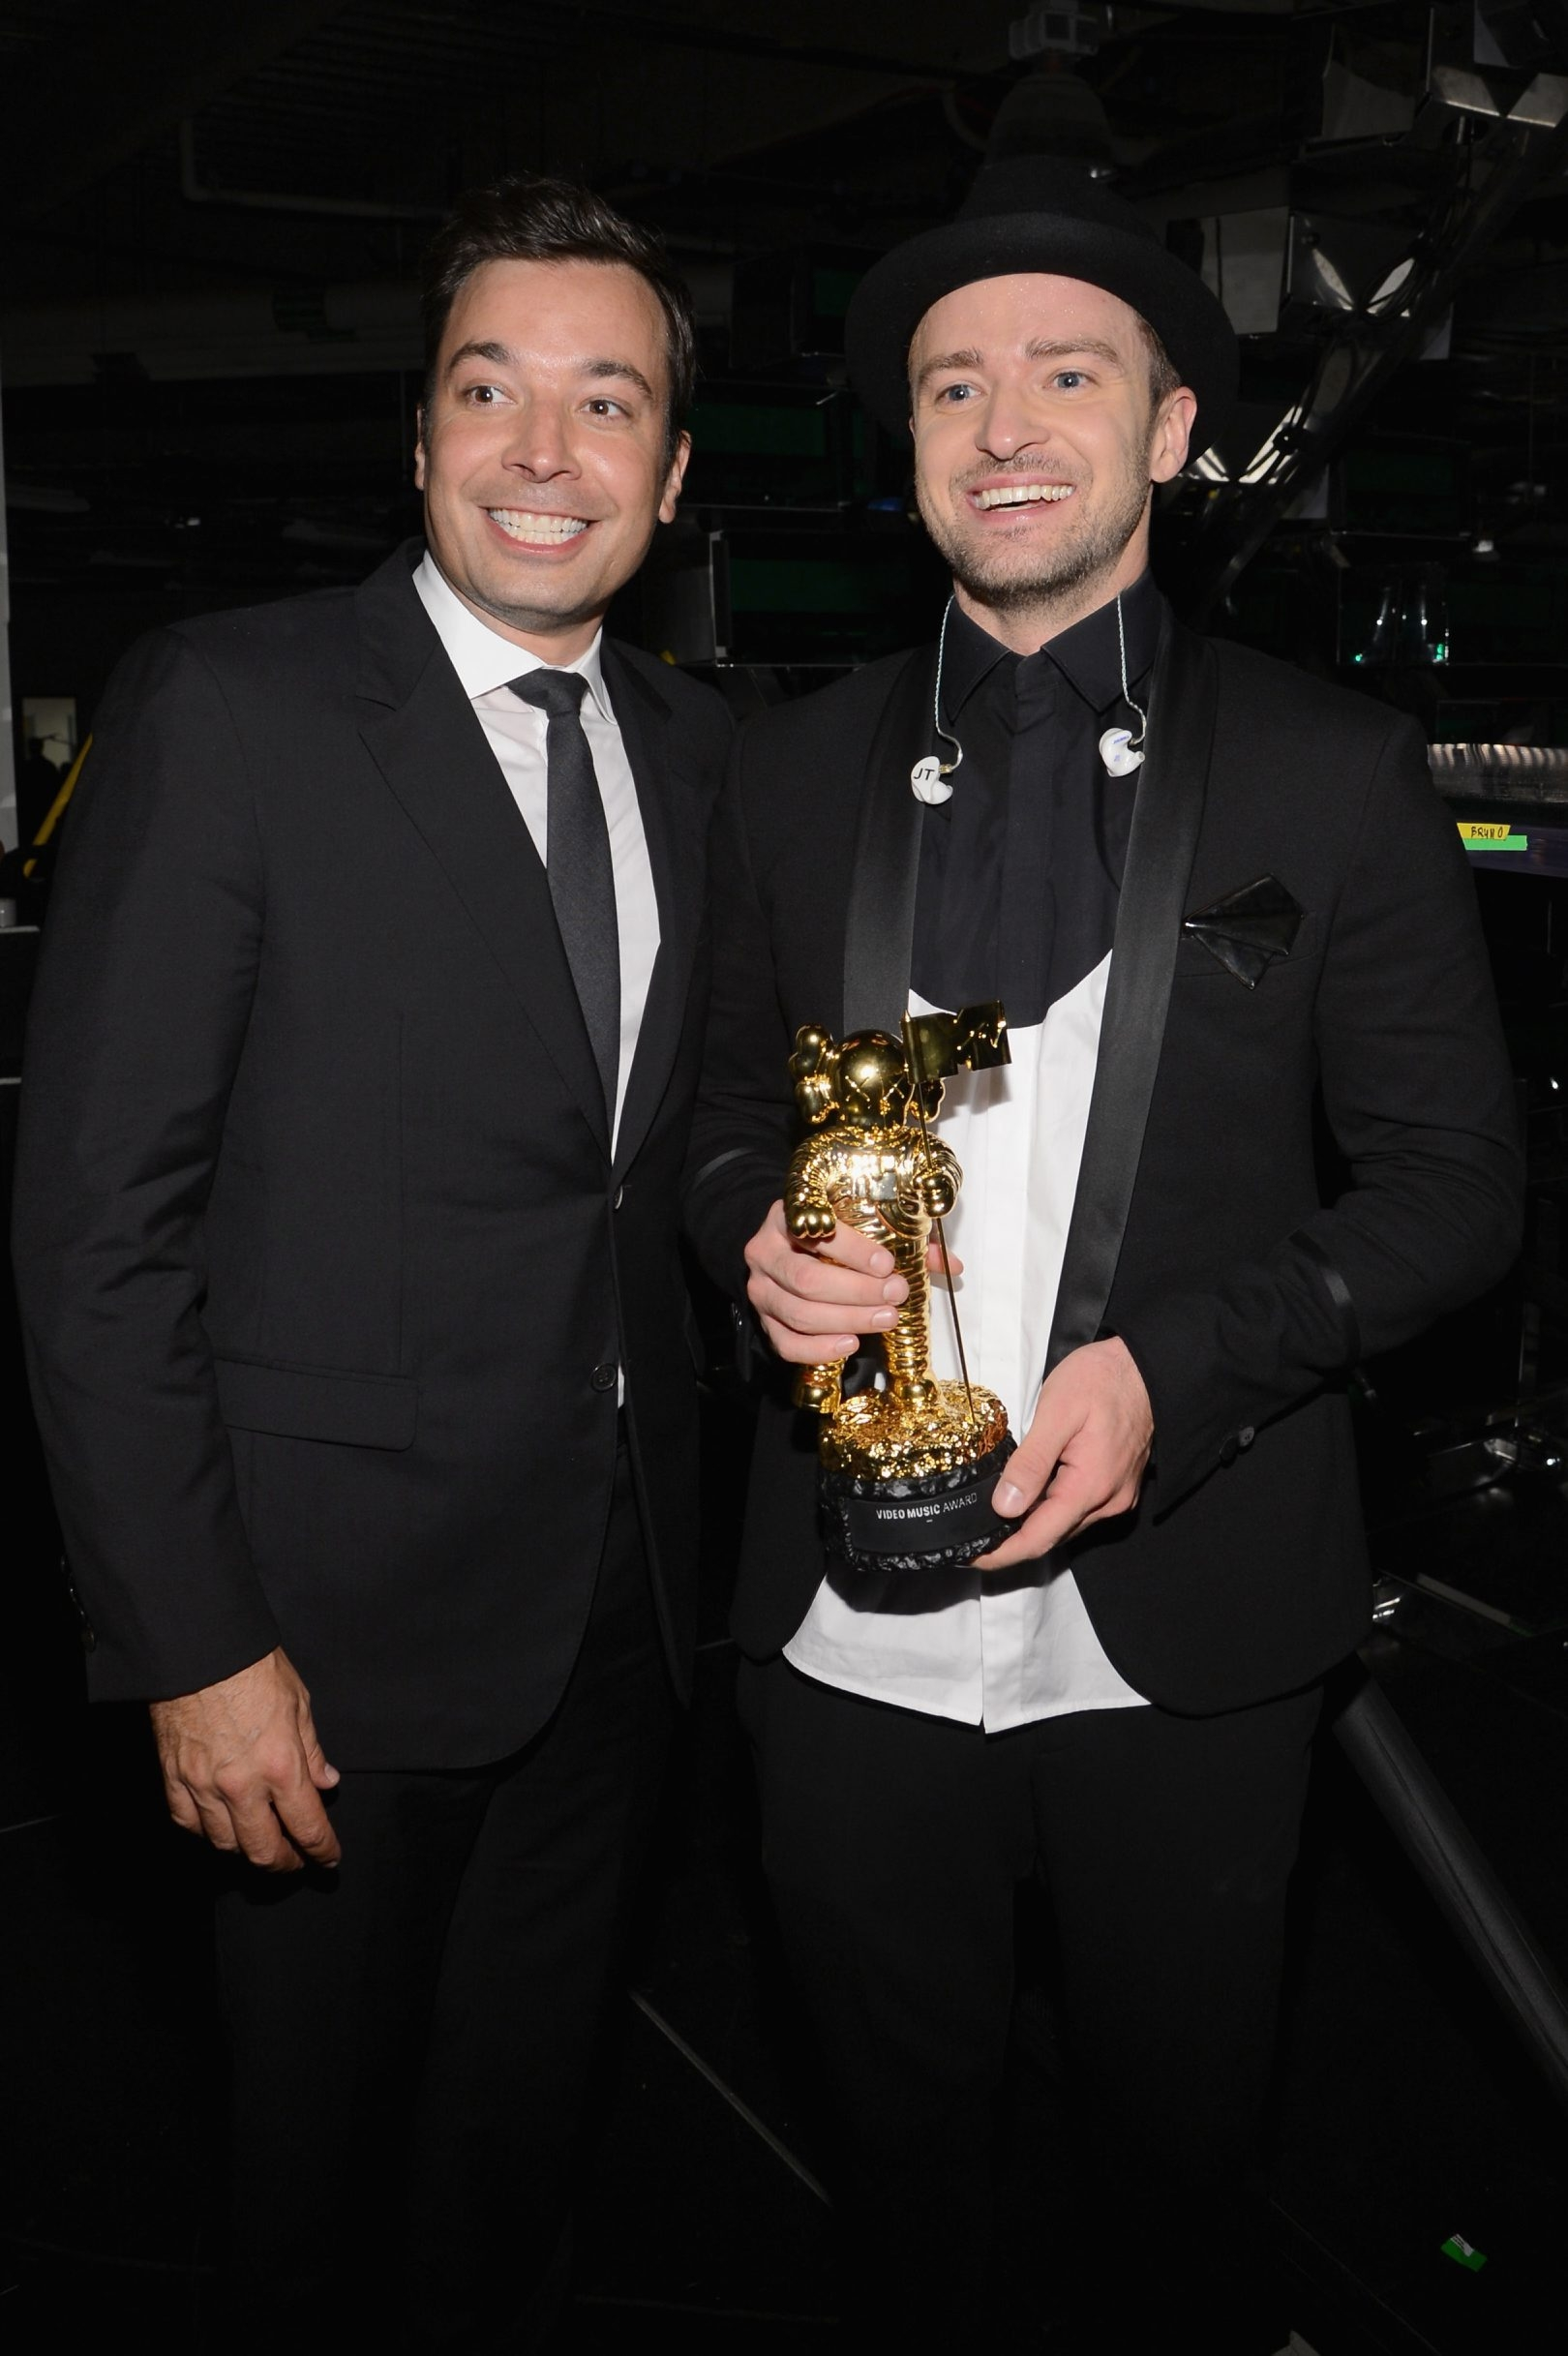 """Justin Timberlake is everywhere these days. At left, he stars with Ben Affleck in """"Runner, Runner,"""" now in theaters. Below, he's seen with pal Jimmy Fallon at the MTV Video Music Awards last month."""